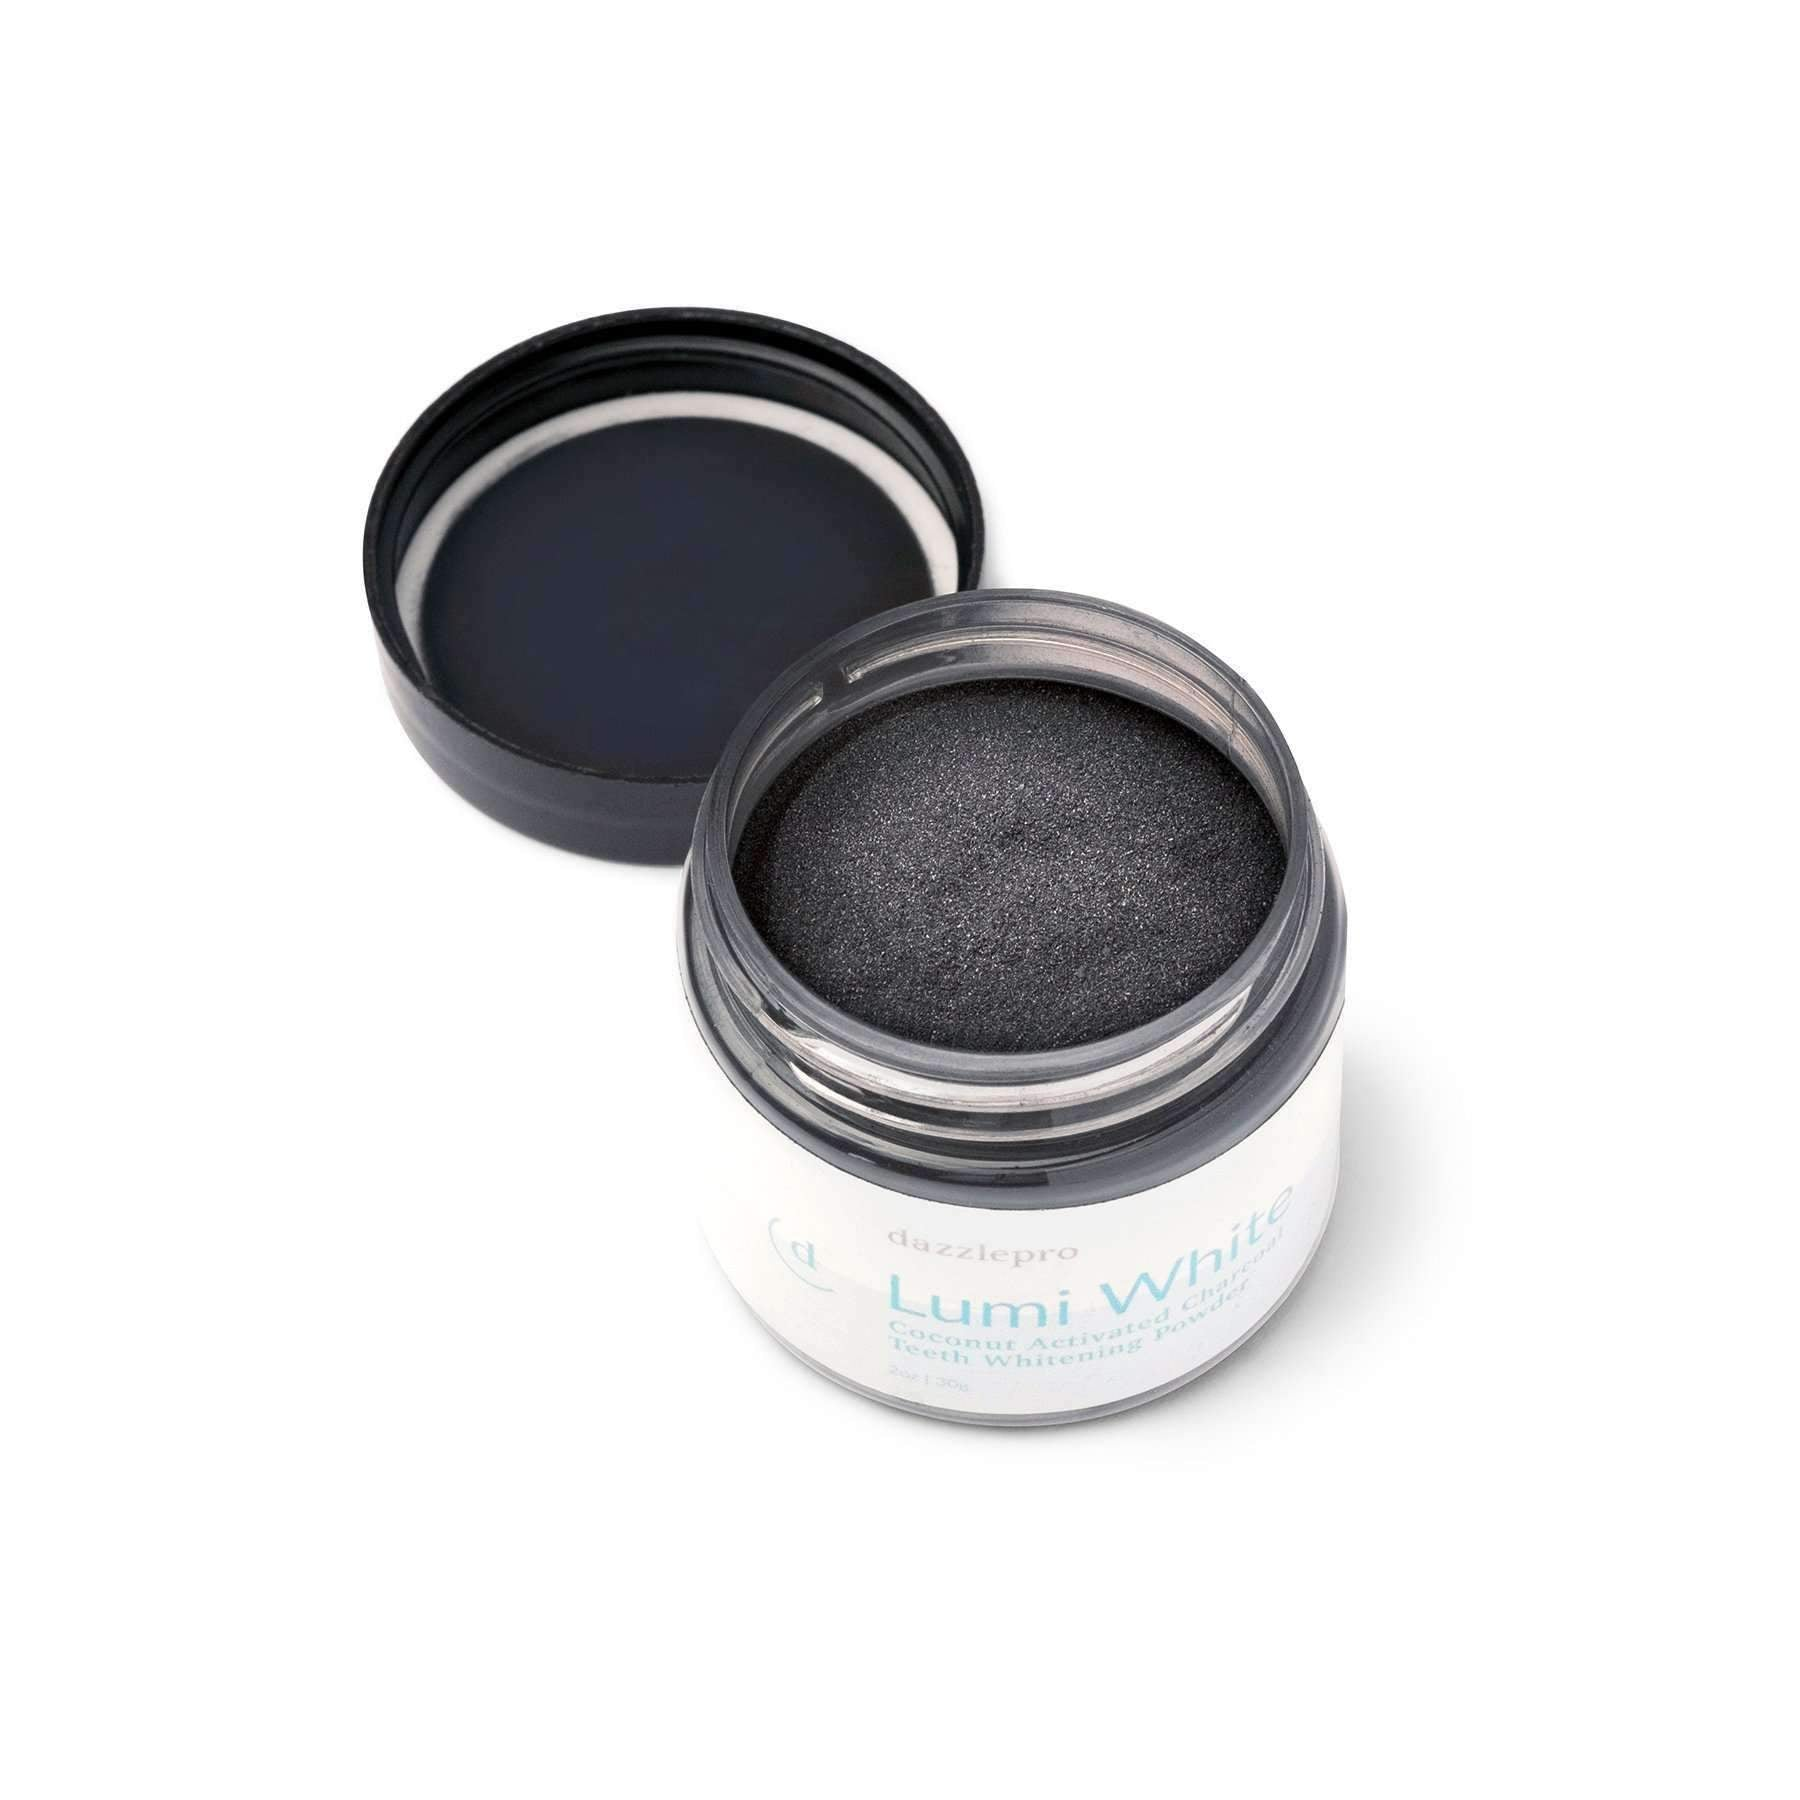 Lumi White | Activated Charcoal Teeth Whitening Powder - Black Friday